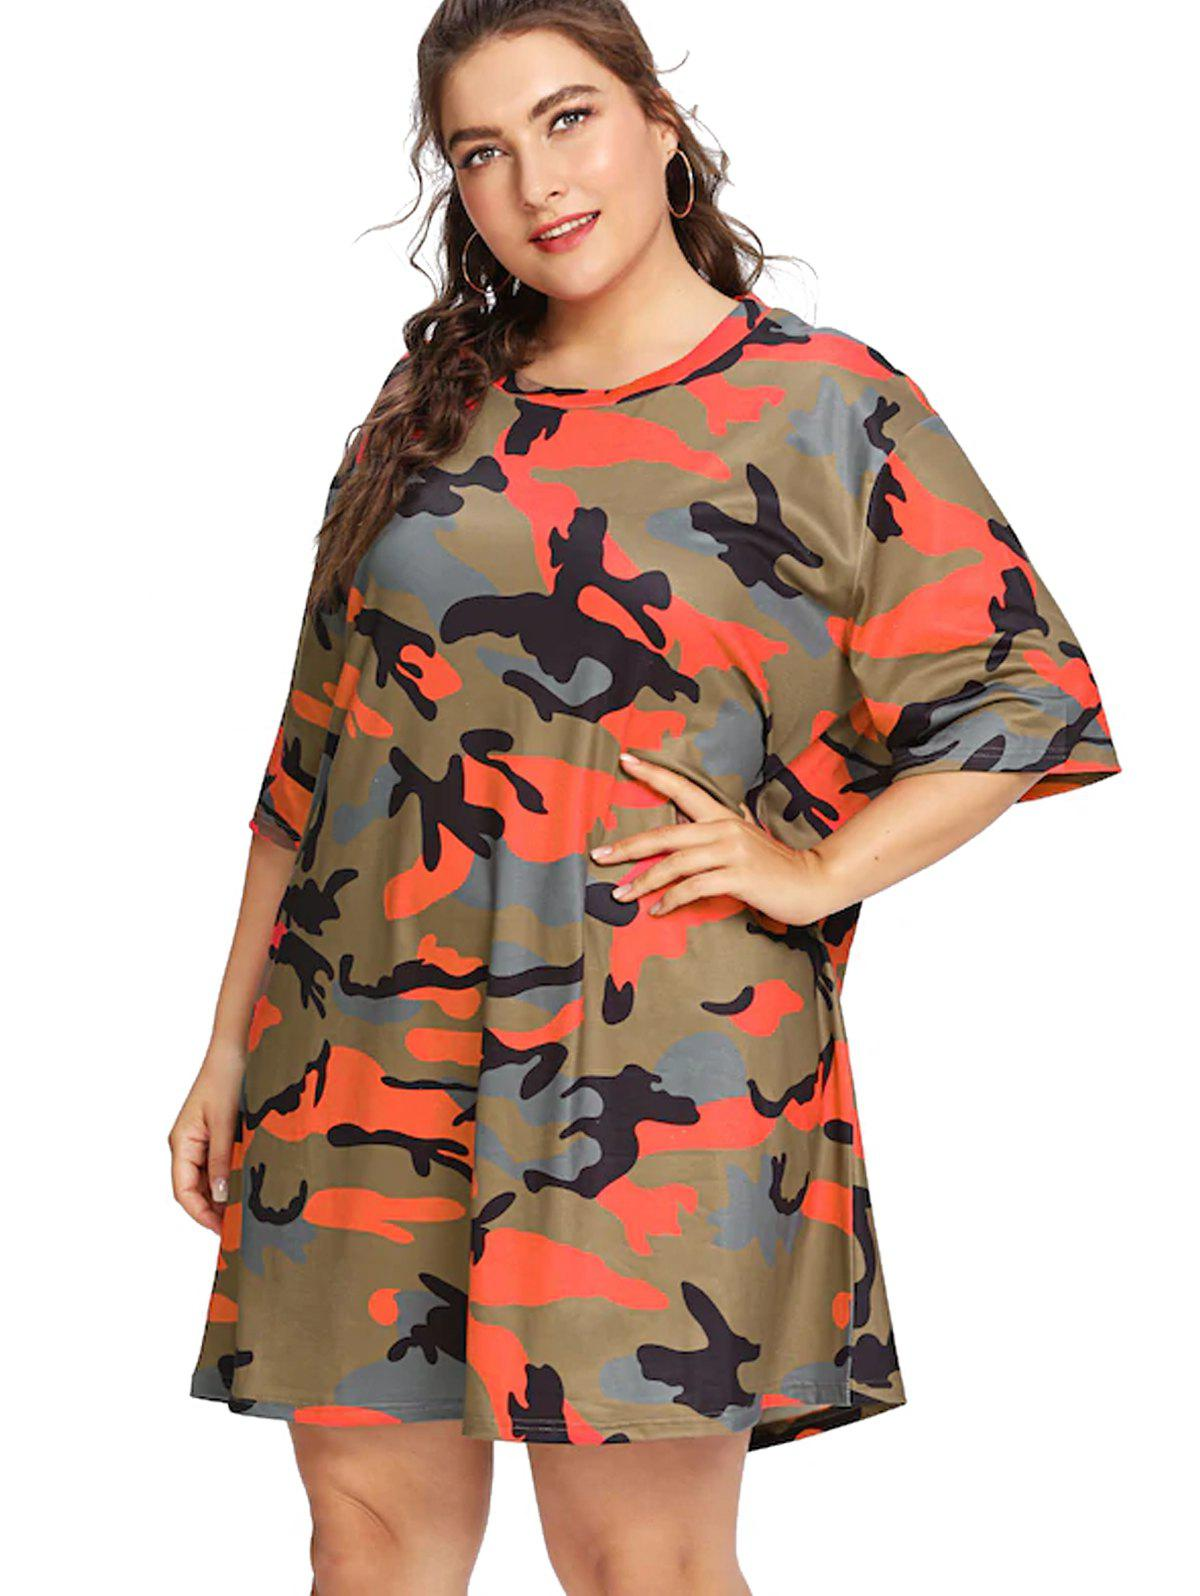 d1a637992fda1 32% OFF] Plus Size Camouflage Casual Short Sleeve T-shirt | Rosegal